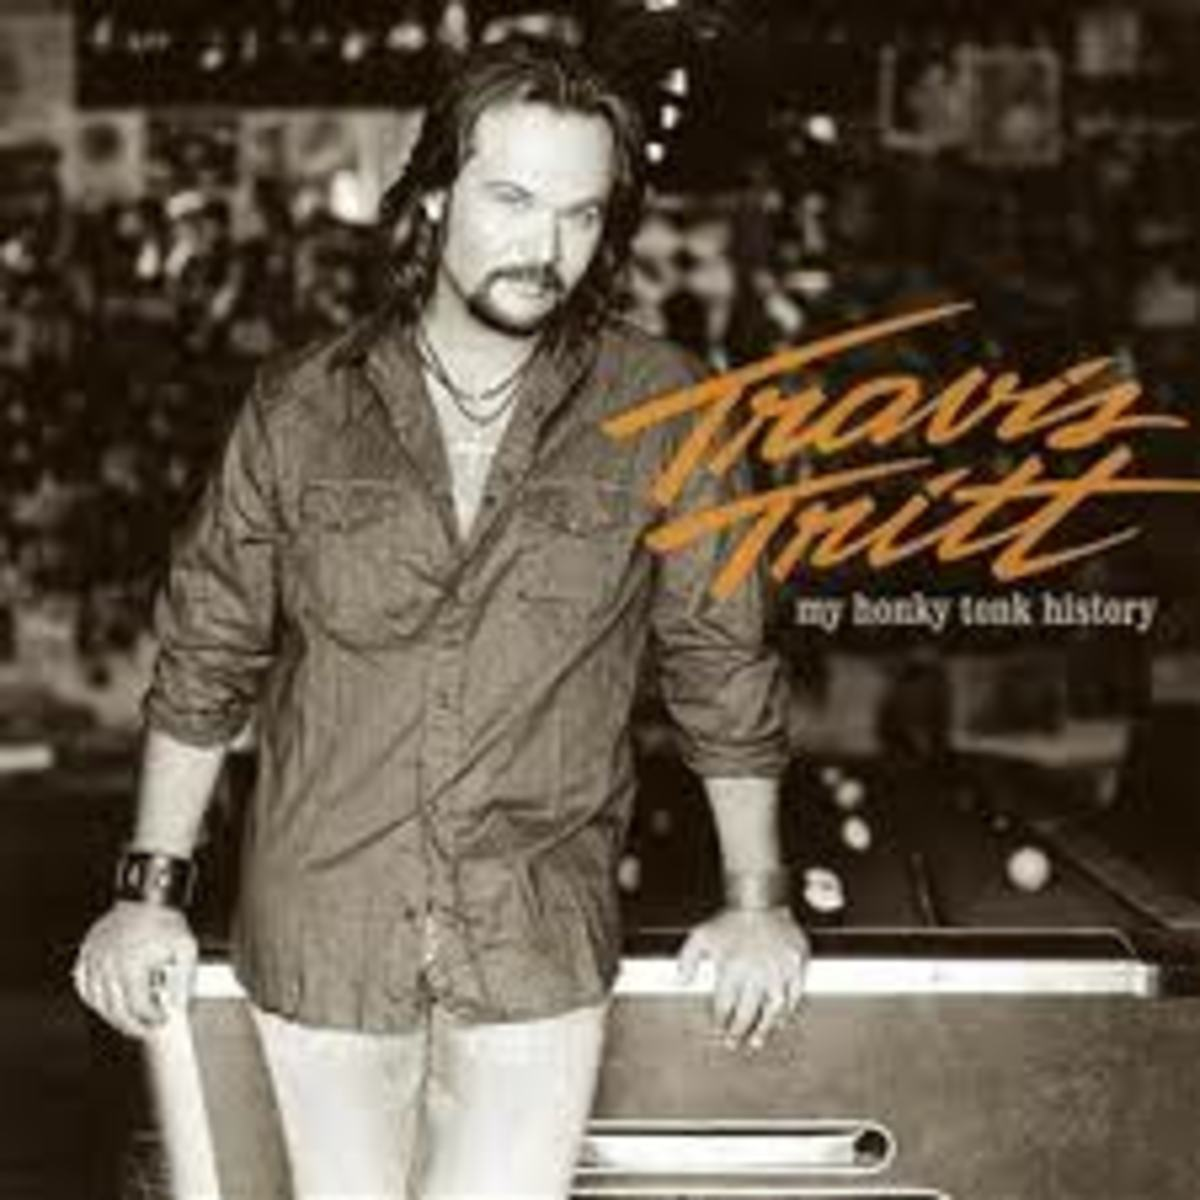 "Travis Tritt Album ""My Honky Tonk History"", with it's cover photo shot at Pioneer Saloon in Goodsprings, Nevada"